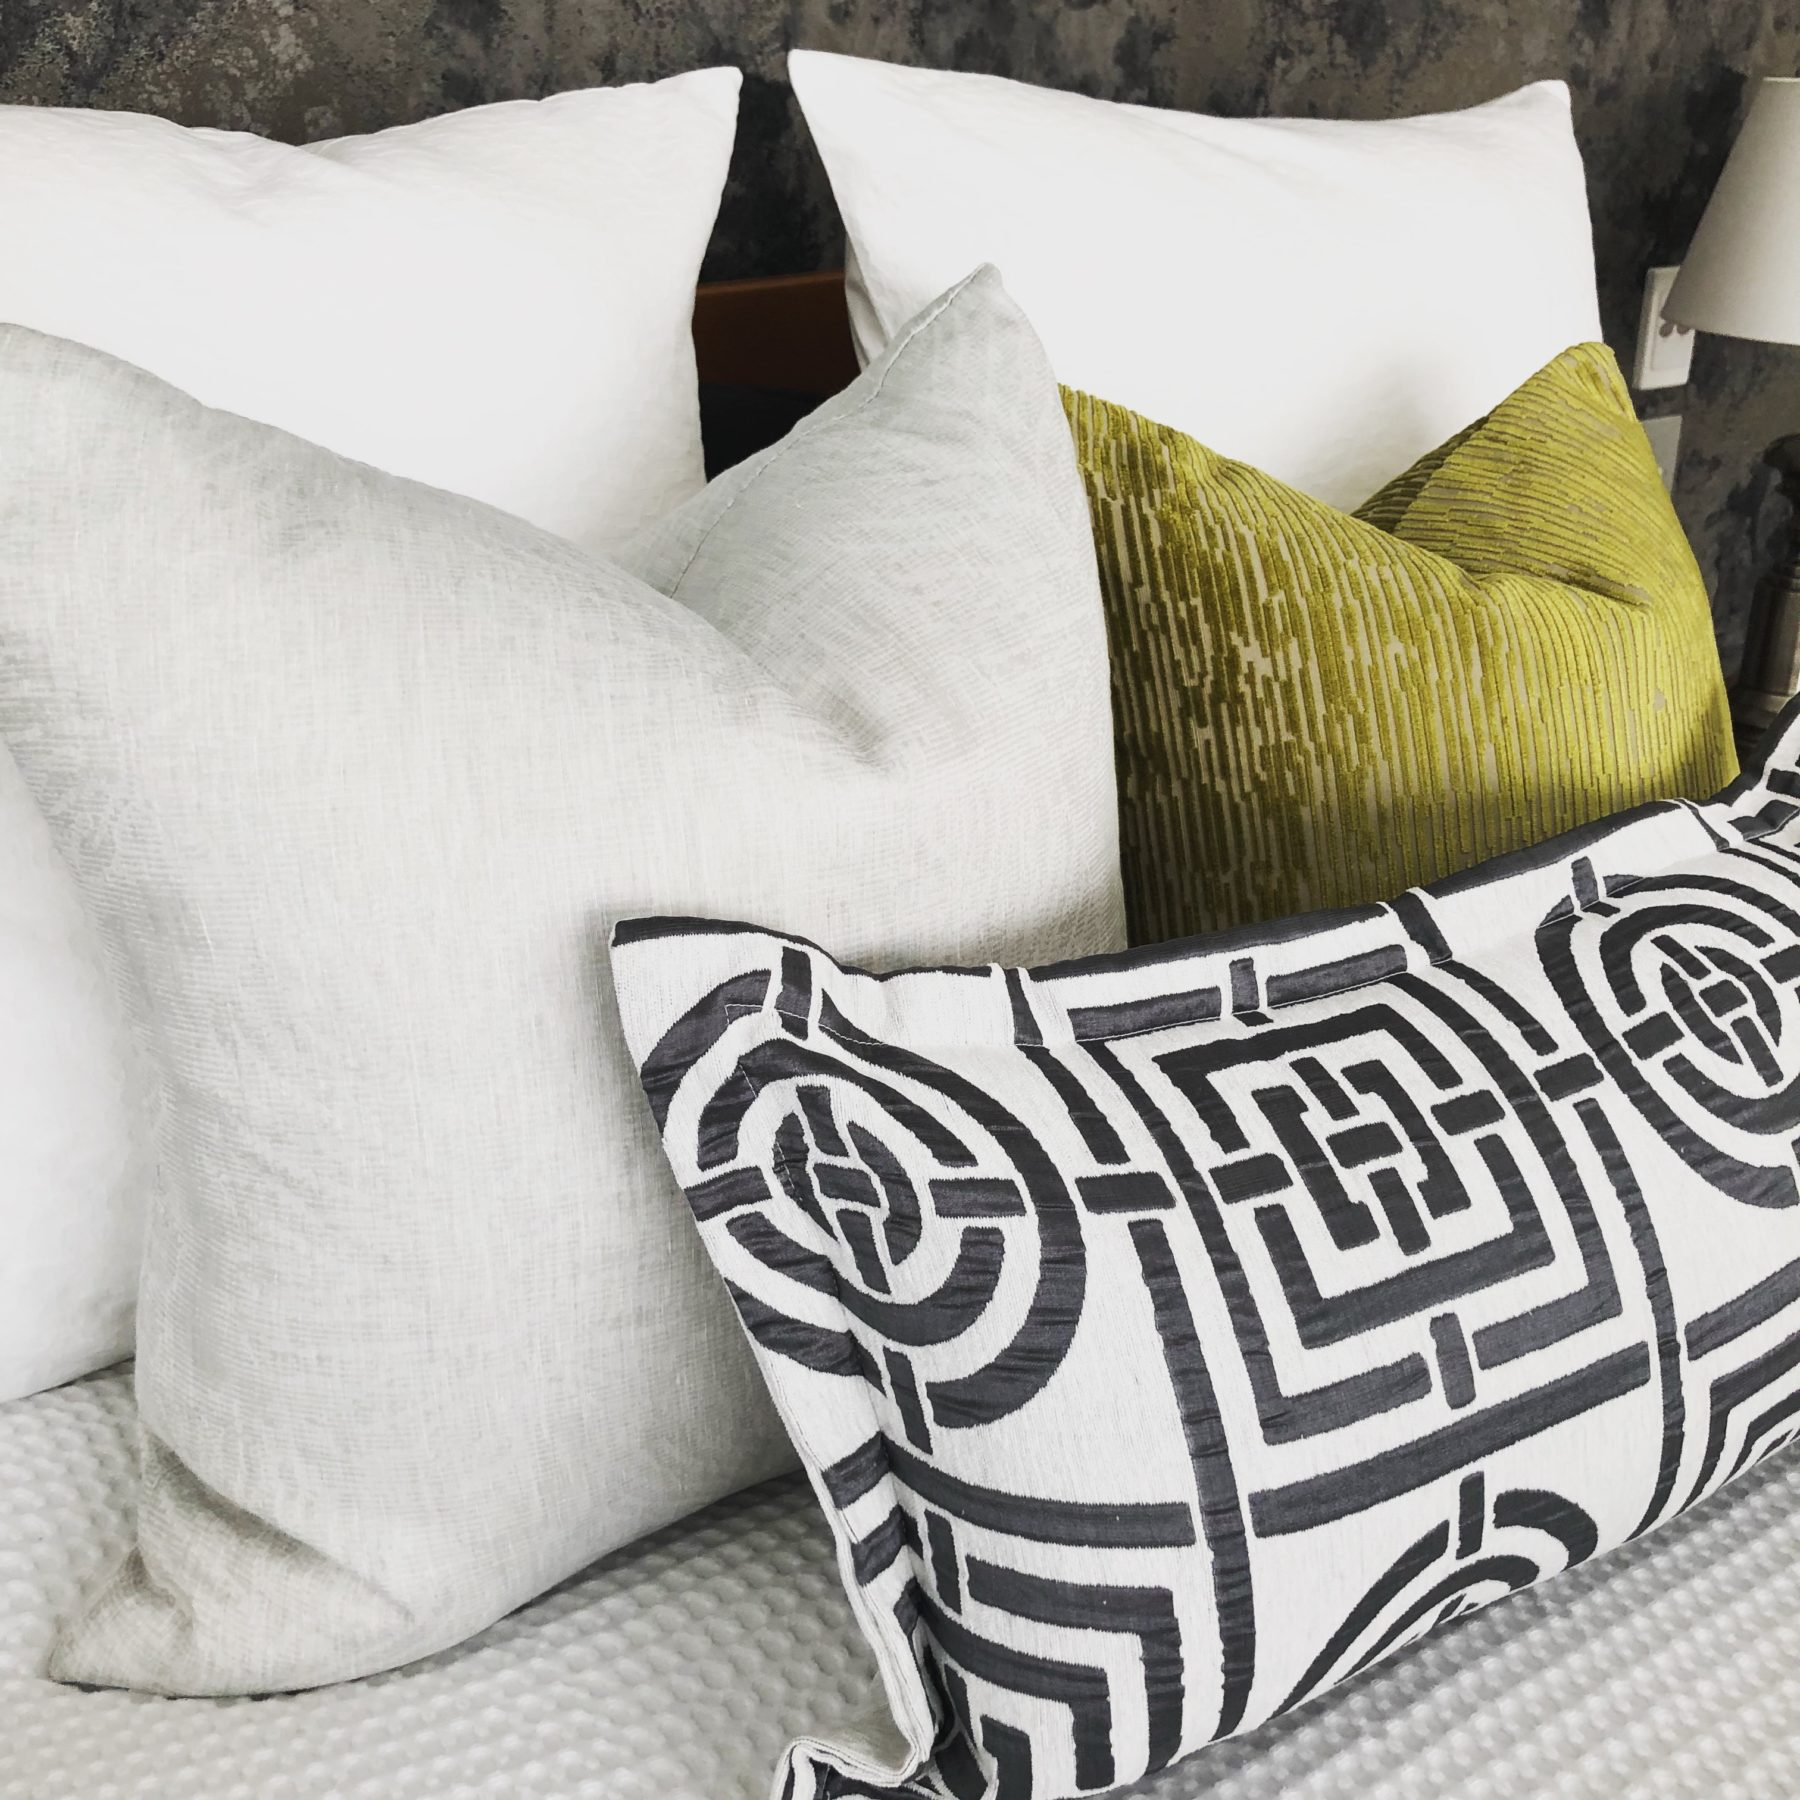 custom made velvet patterned cushions in green and grey on a king size bed